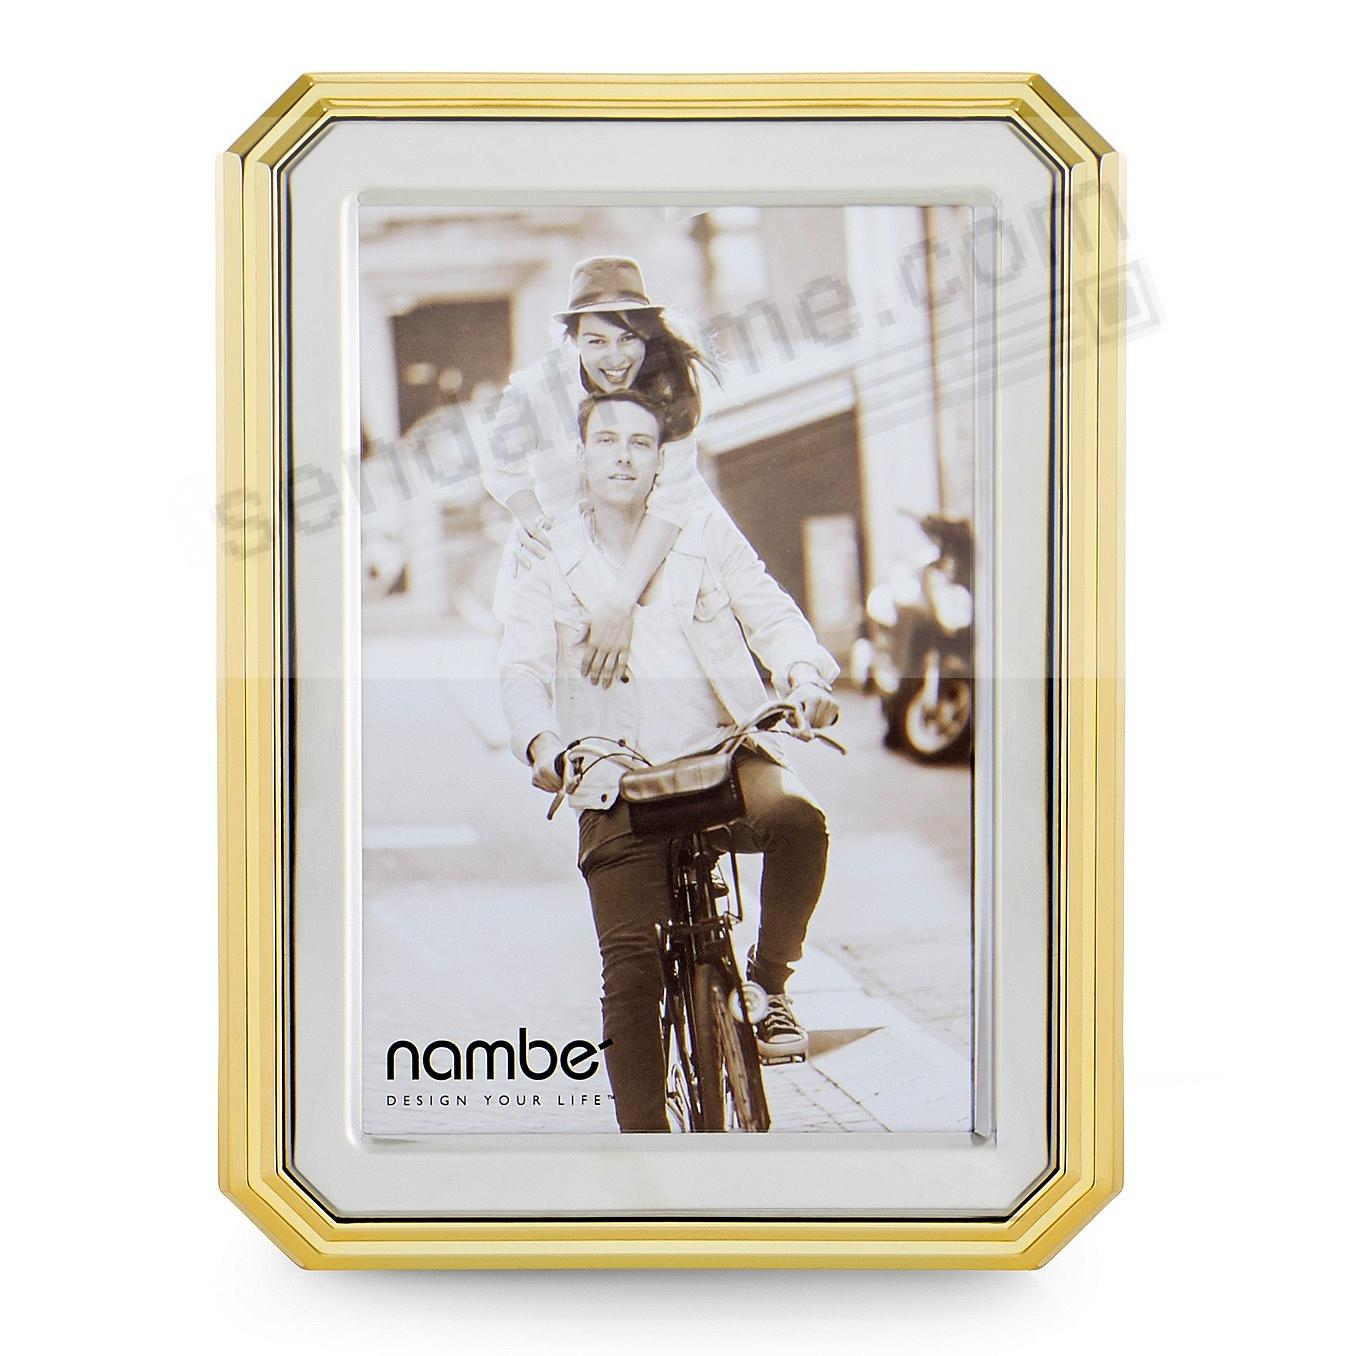 The GLEASON 4x6 frame by Nambe